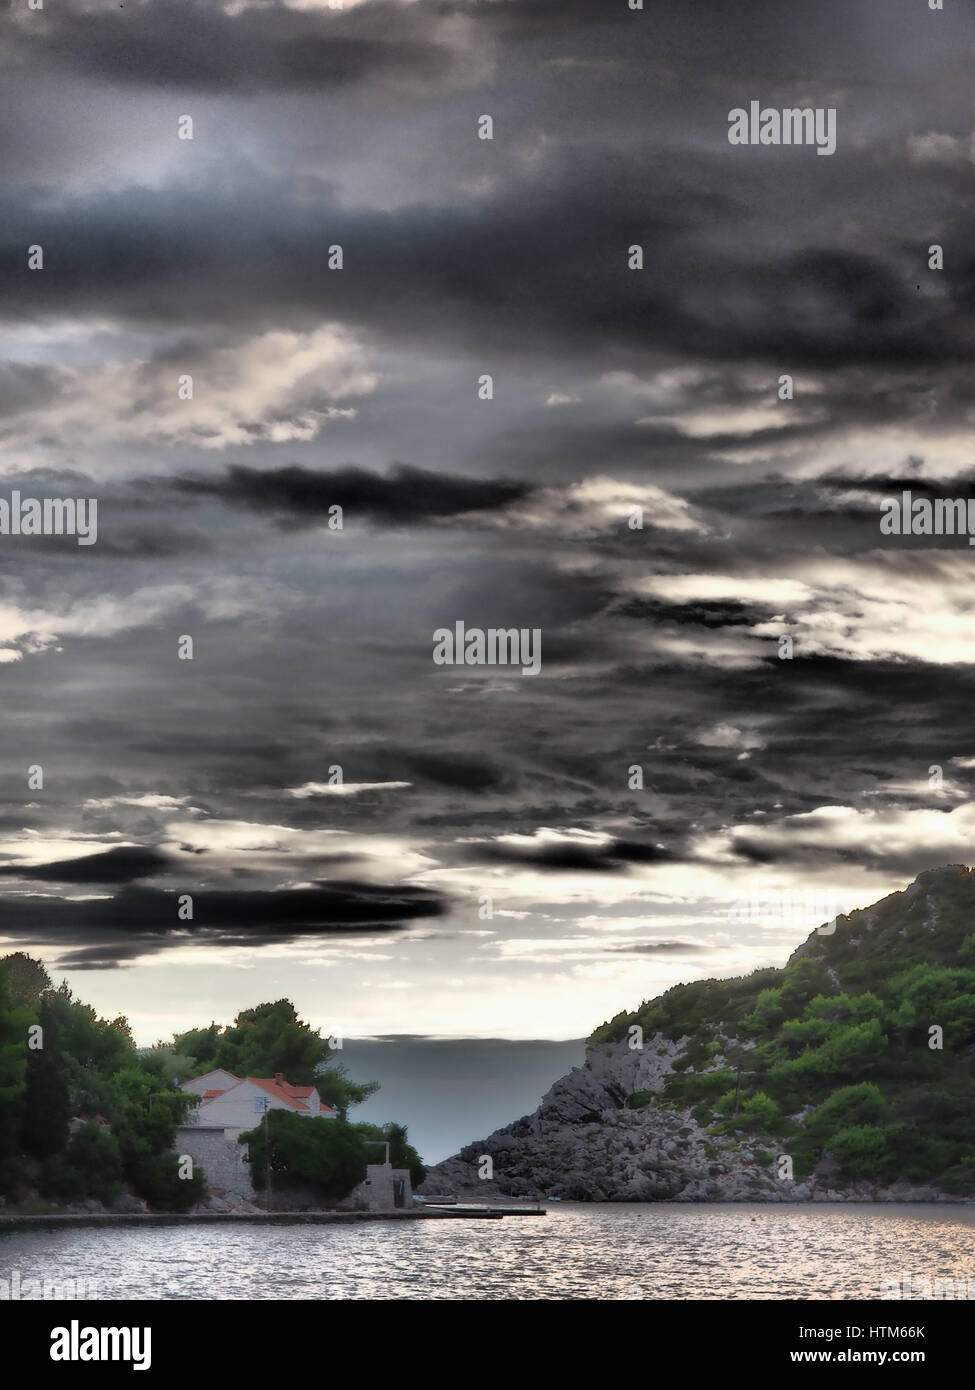 An angry stormy storm dark sky with clouds above a rocky island outcrop with trees and red roof house, Sipan Croatia - Stock Image